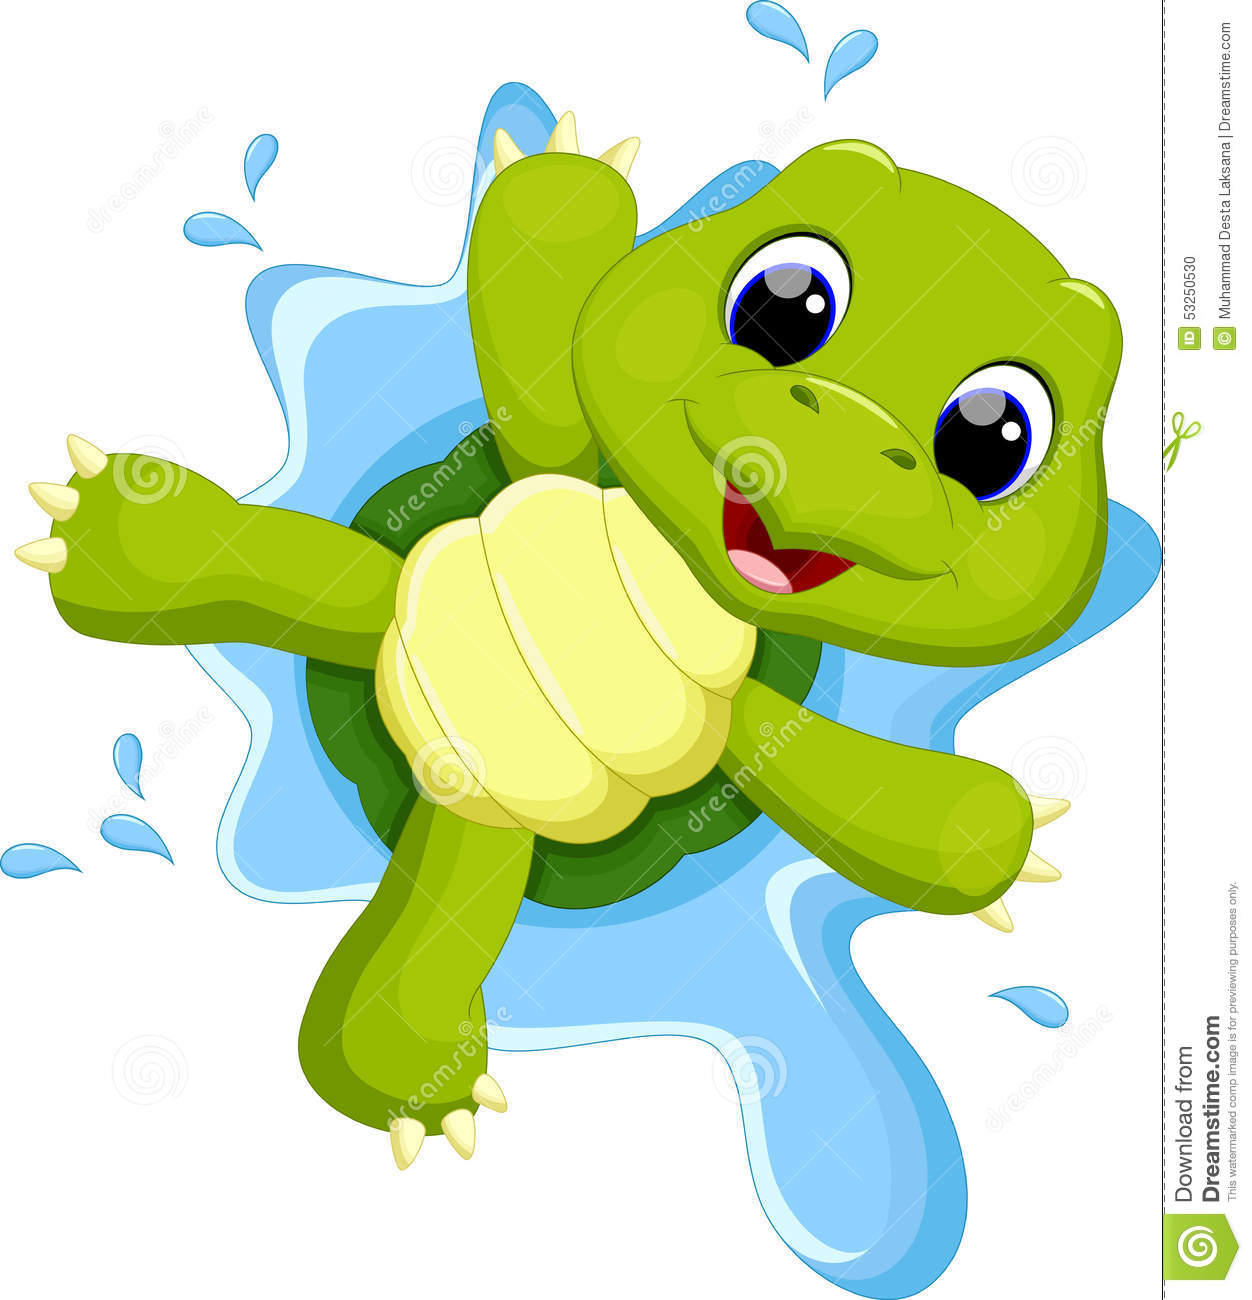 Cute Turtle Cartoon Stock Illustration - Image: 53250530